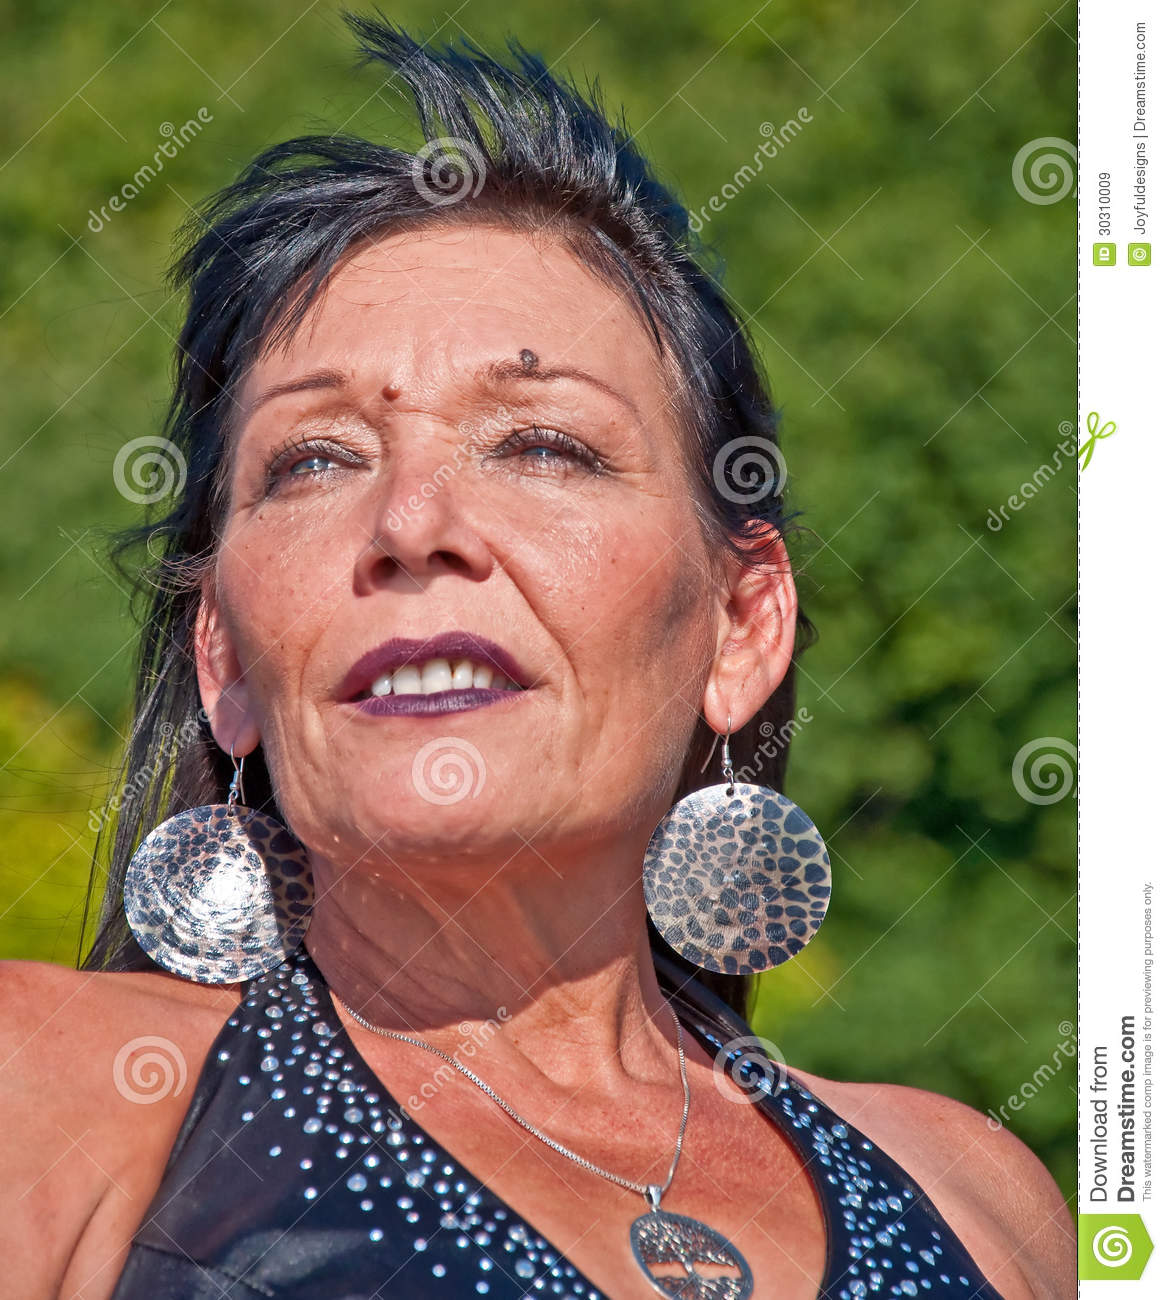 mature native american woman portrait stock image - image of female